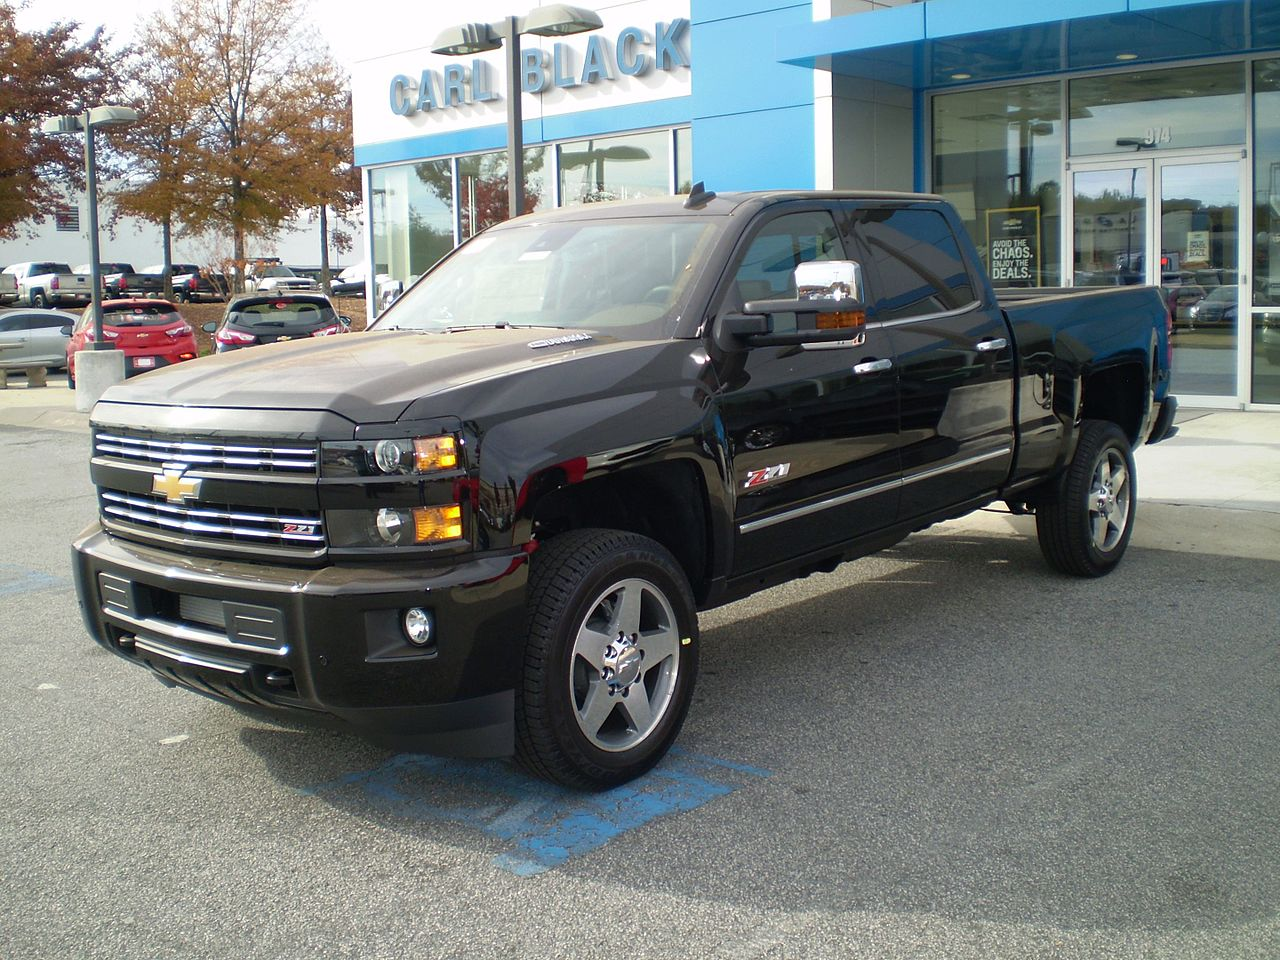 New 2019 Chevy Silverado just revealed...round wheel wells ...